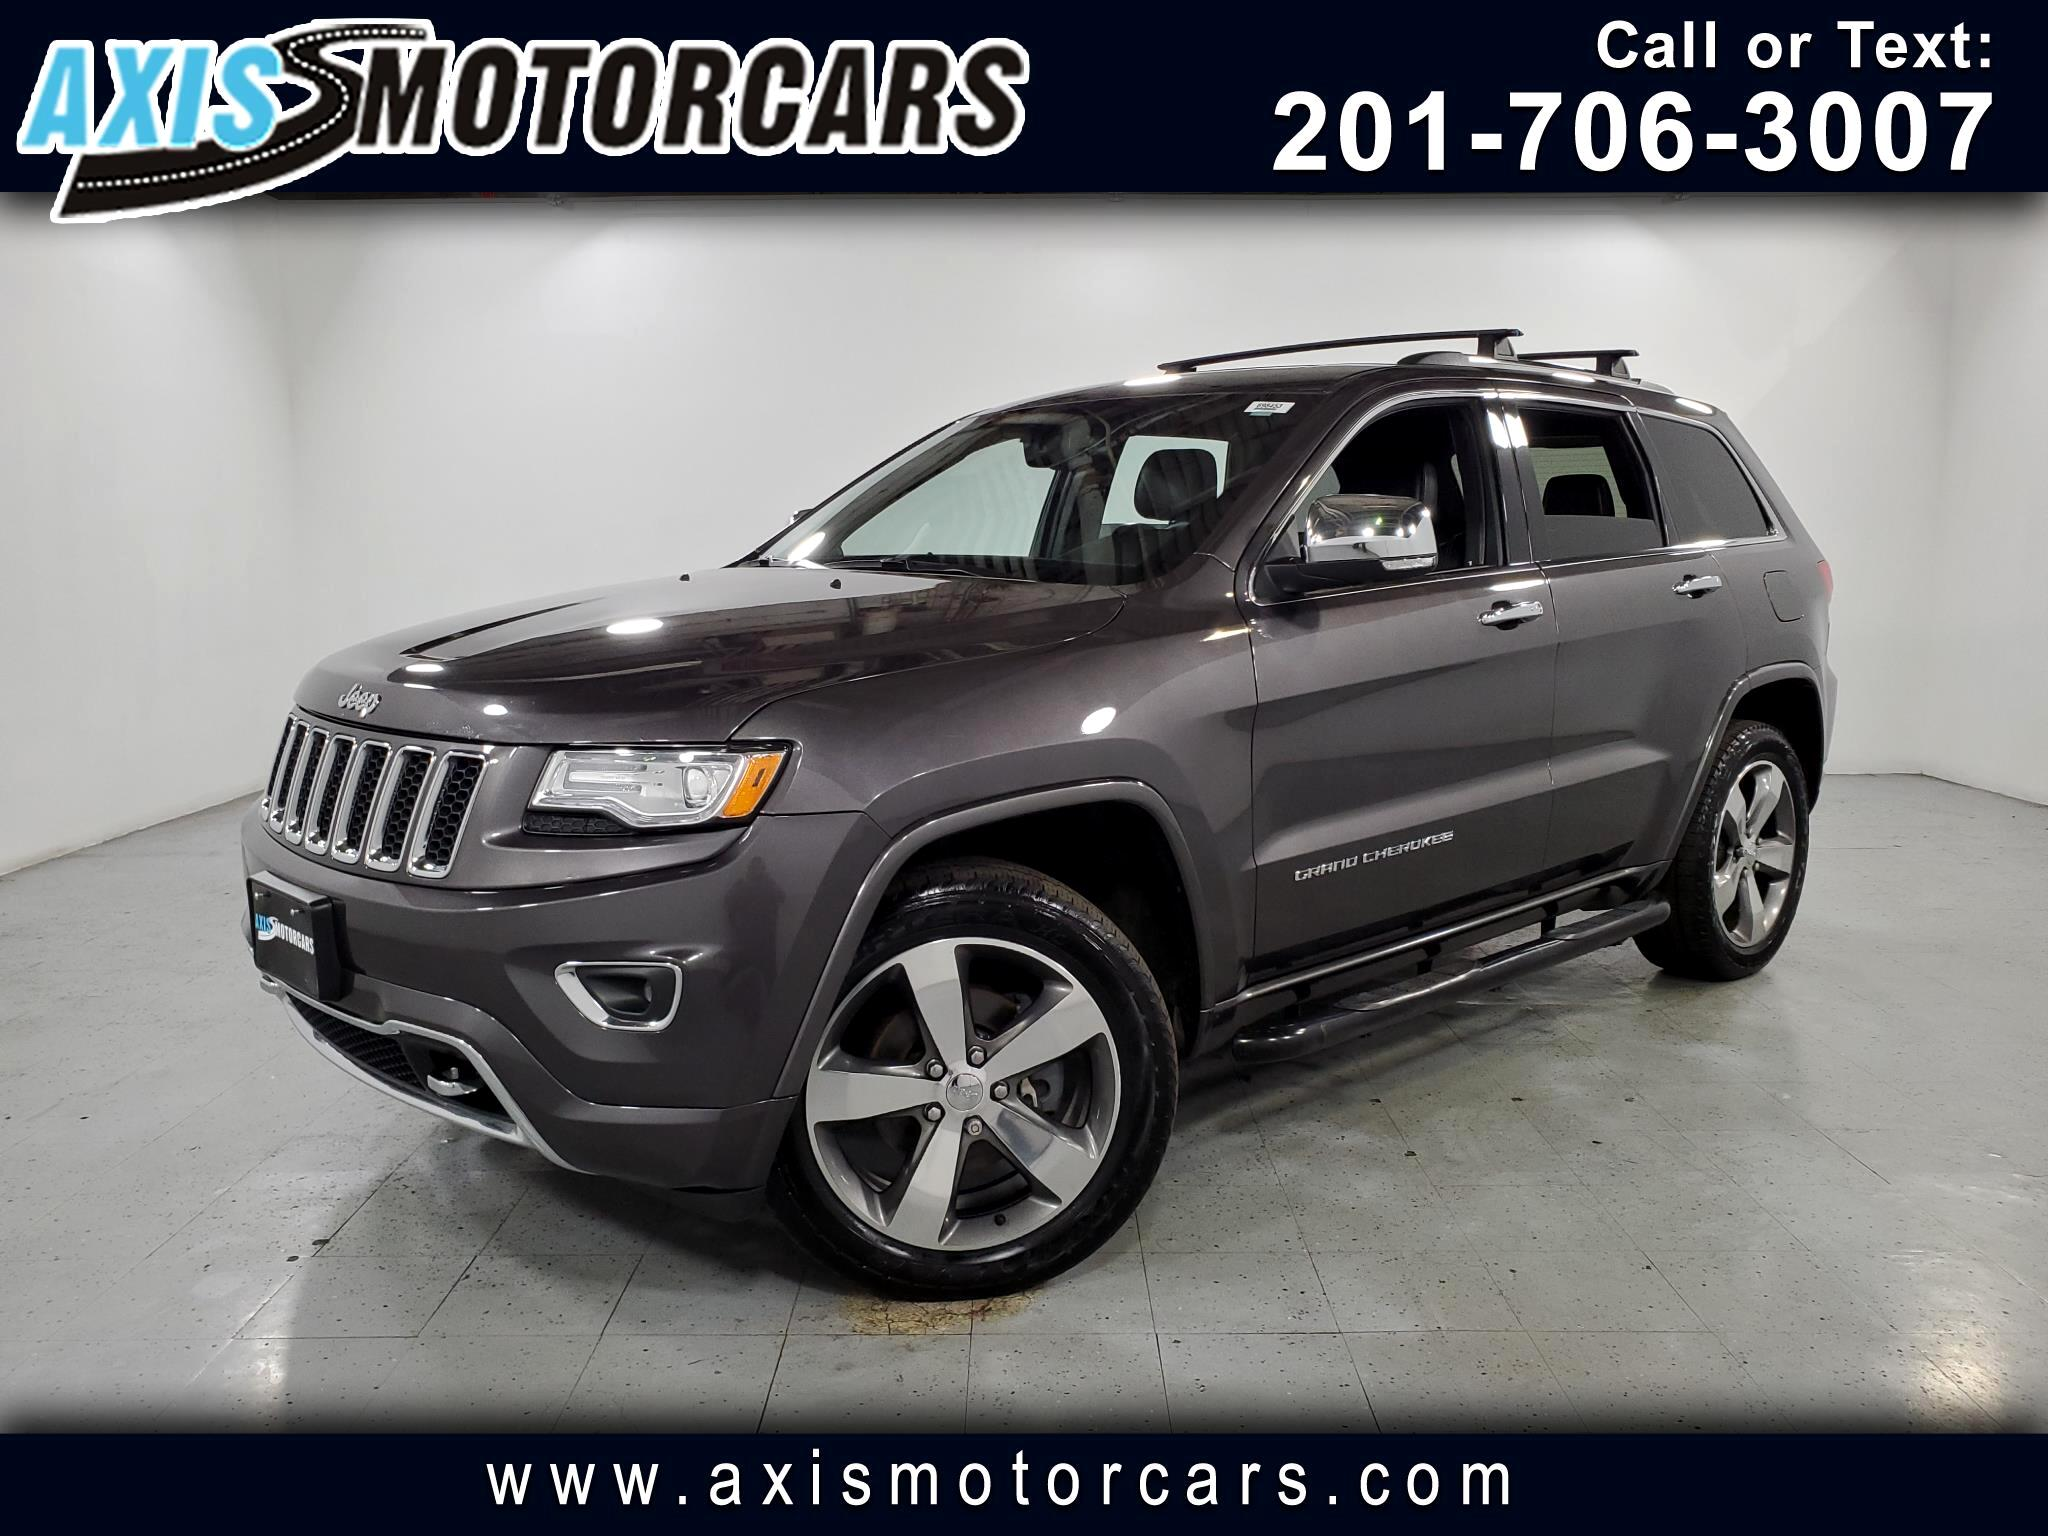 2015 Jeep Grand Cherokee w/Navigation Backup Camera Sunroof